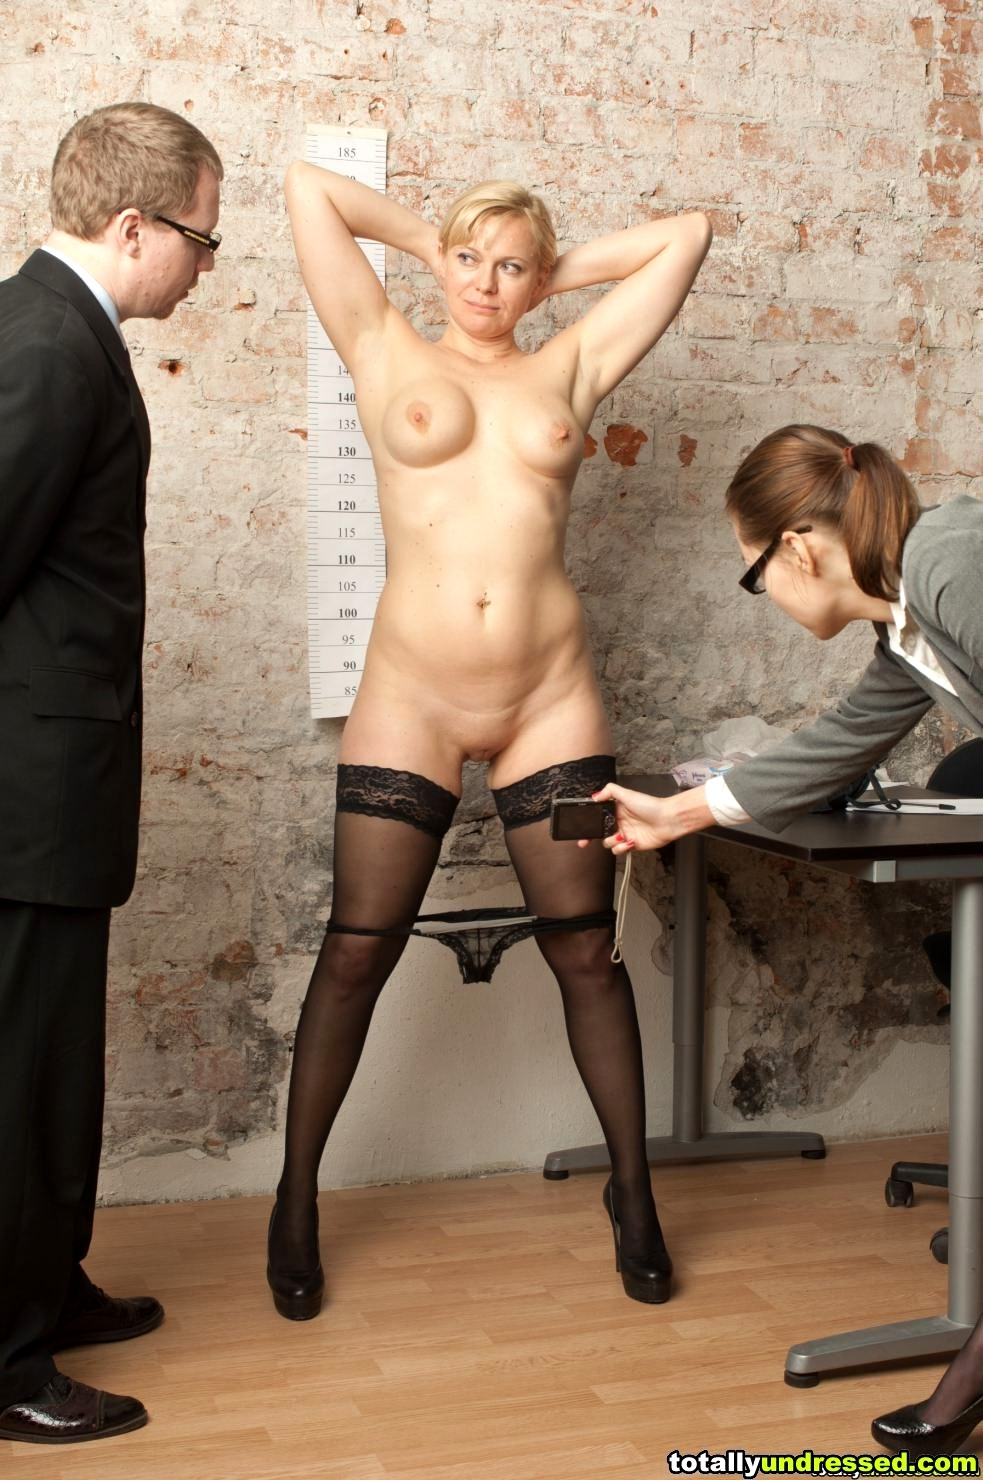 Showing Xxx Images For Porn Undressed Job Interview Xxx -1400